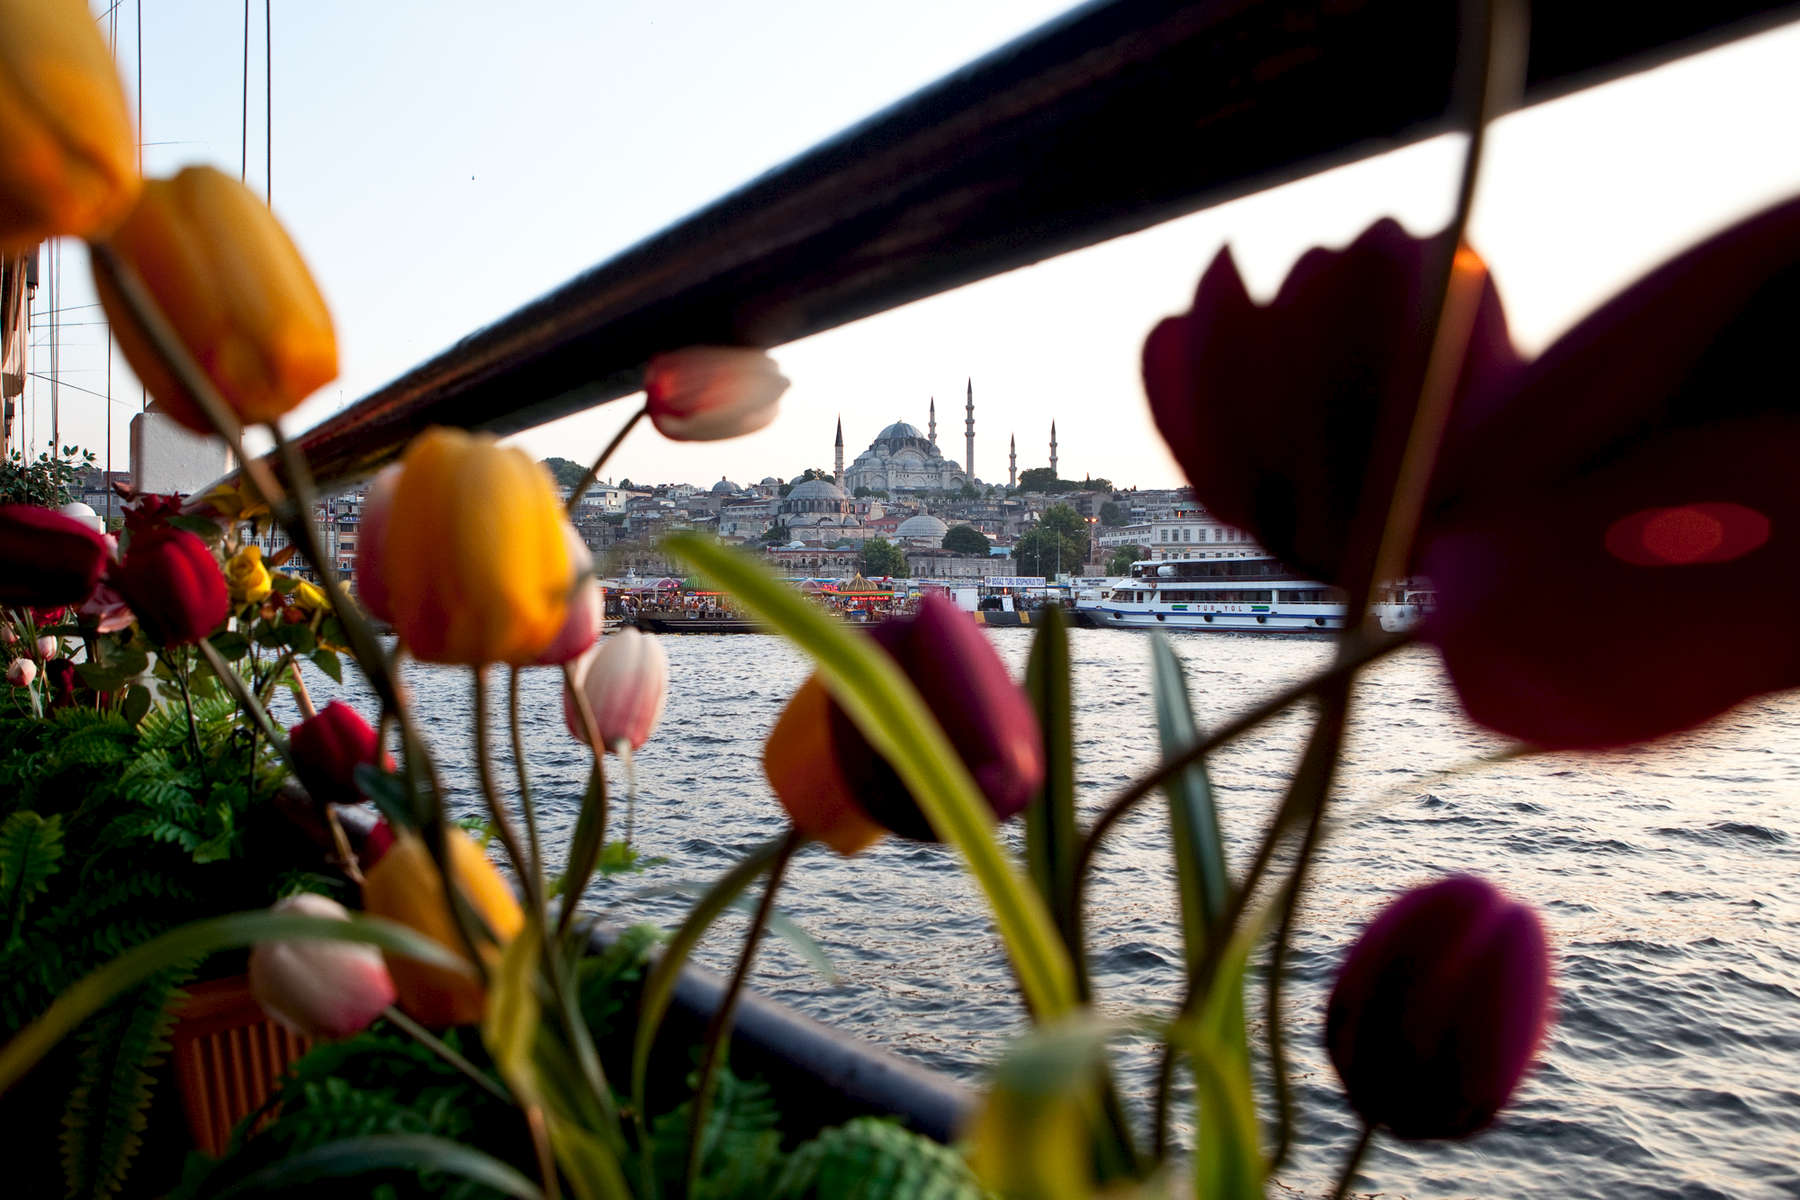 The mosque of Suleiman the Magnificent (completed in 1558) framed by tulips on the Galata Bridge.